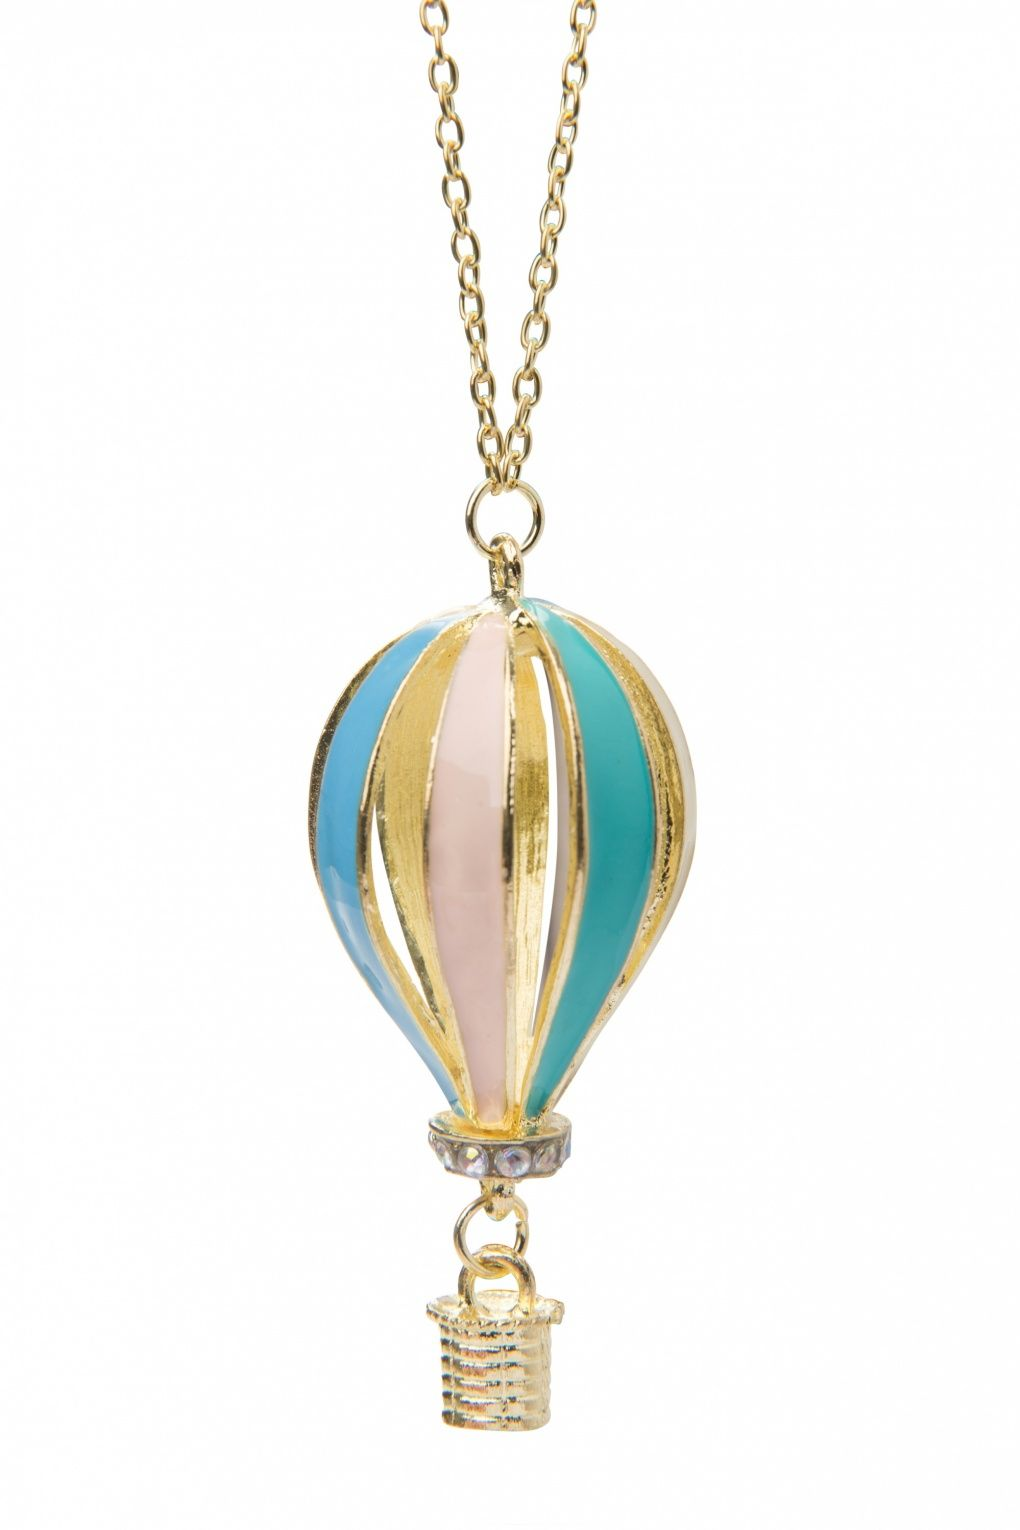 From Paris with Love! - 20s Around the world in 80 days! Gold Enamel Necklace